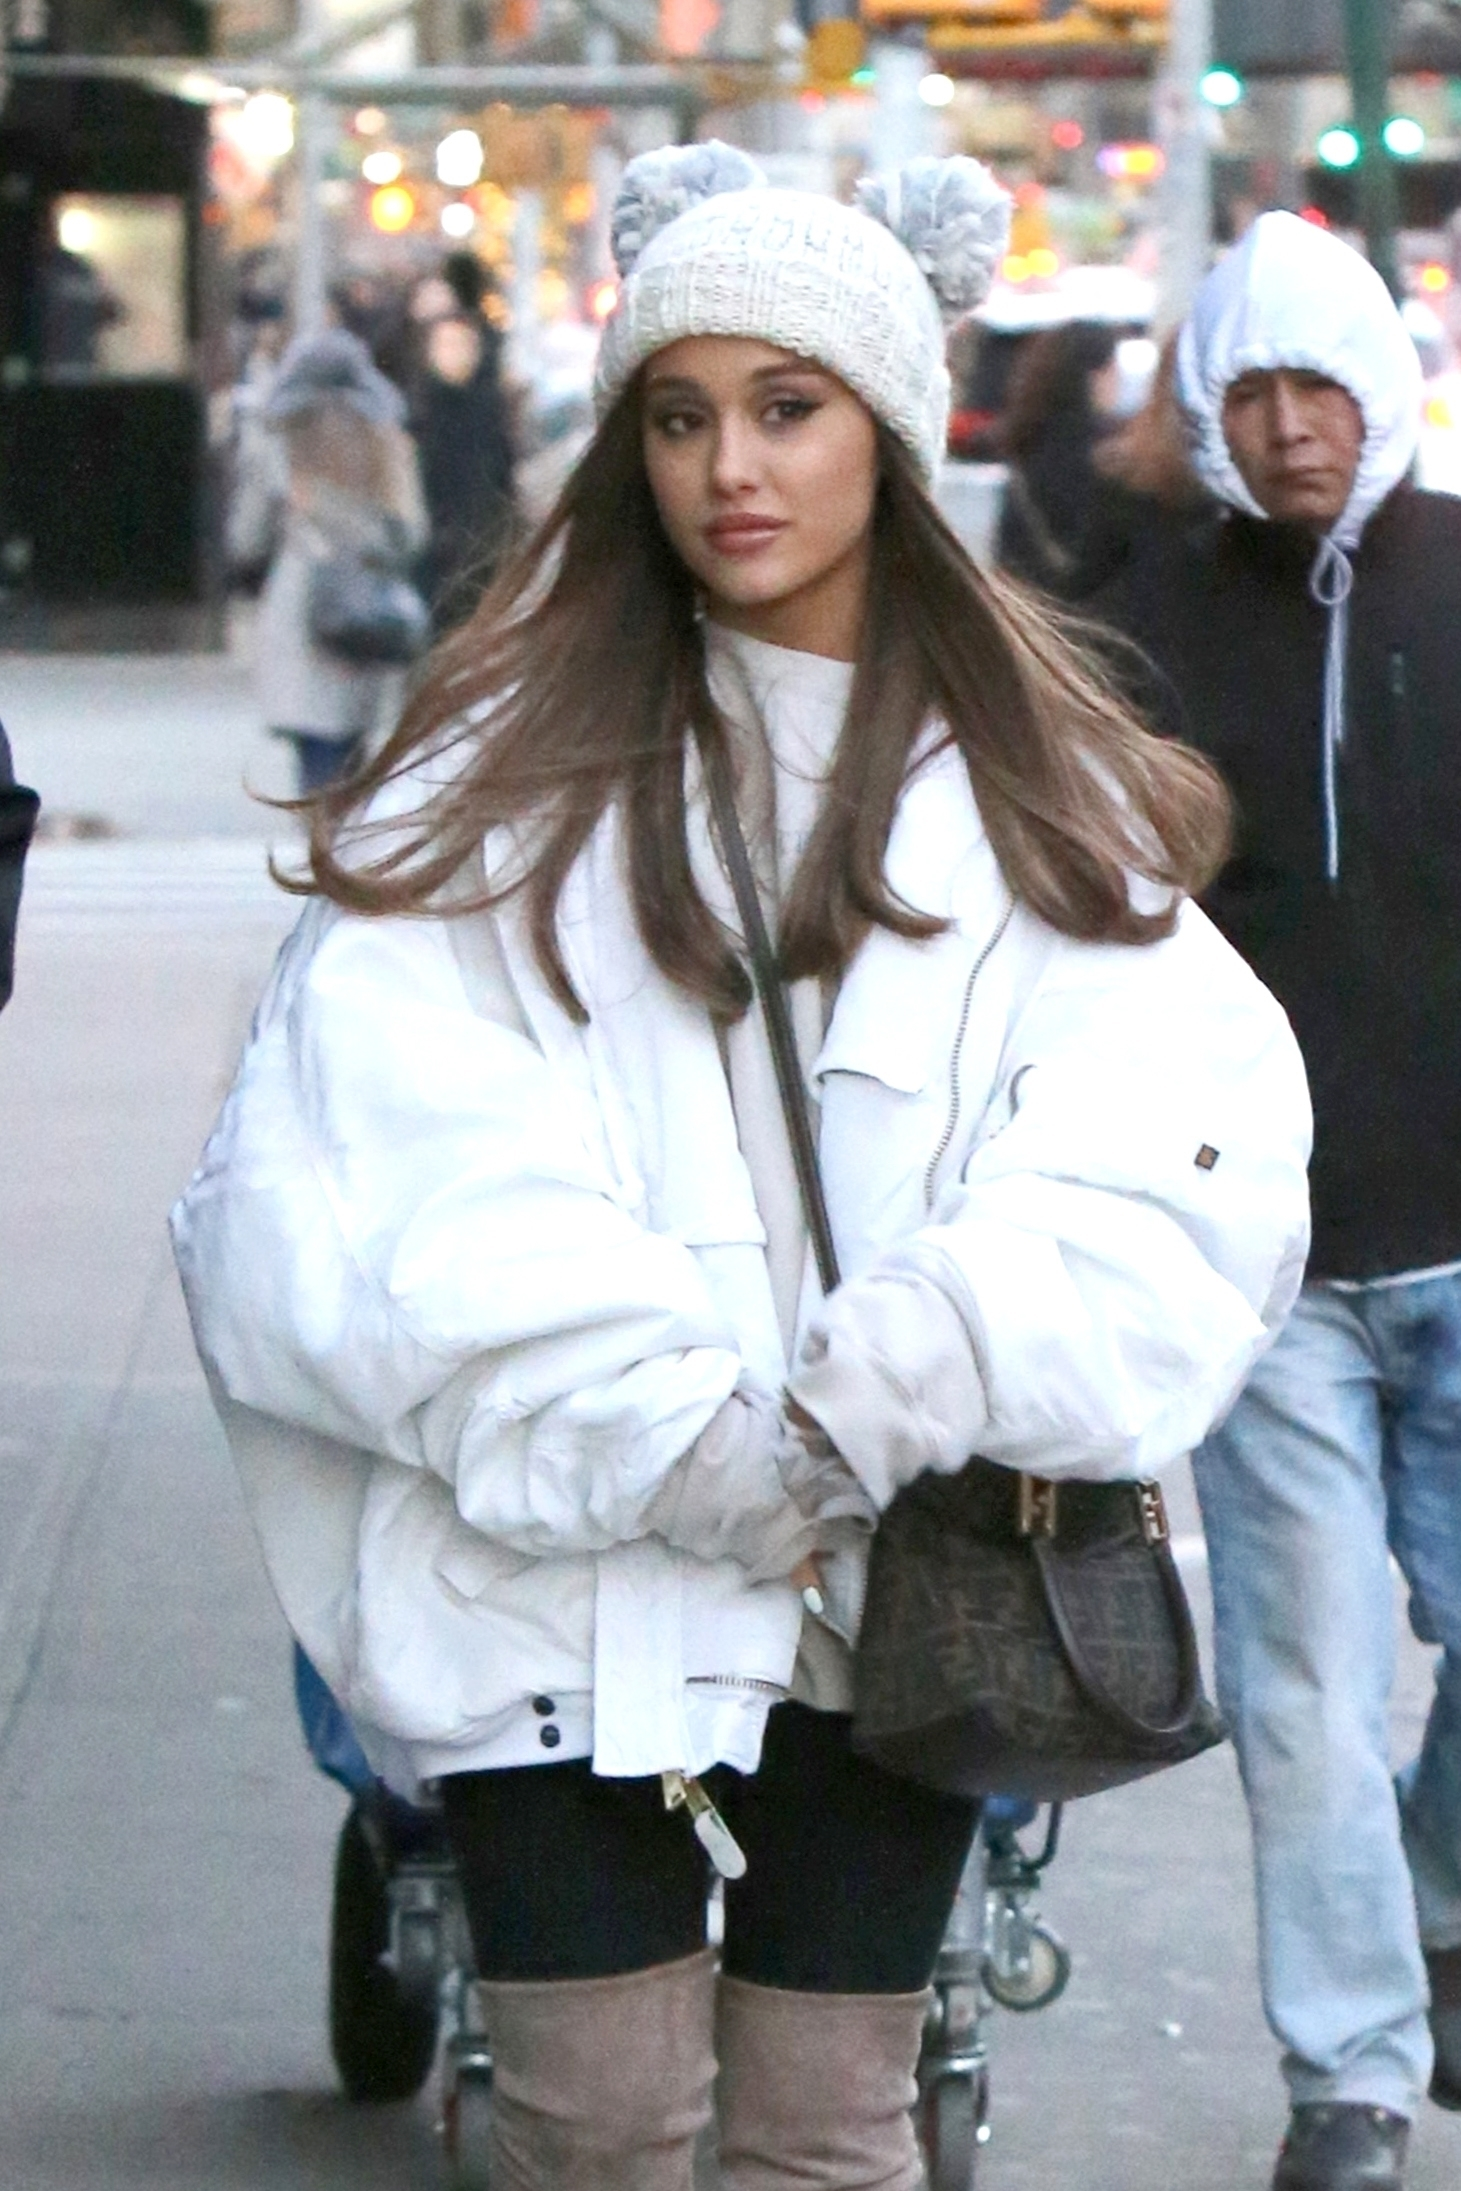 Ariana Grande is spotted out and about in New York City on Dec. 7, 2018.